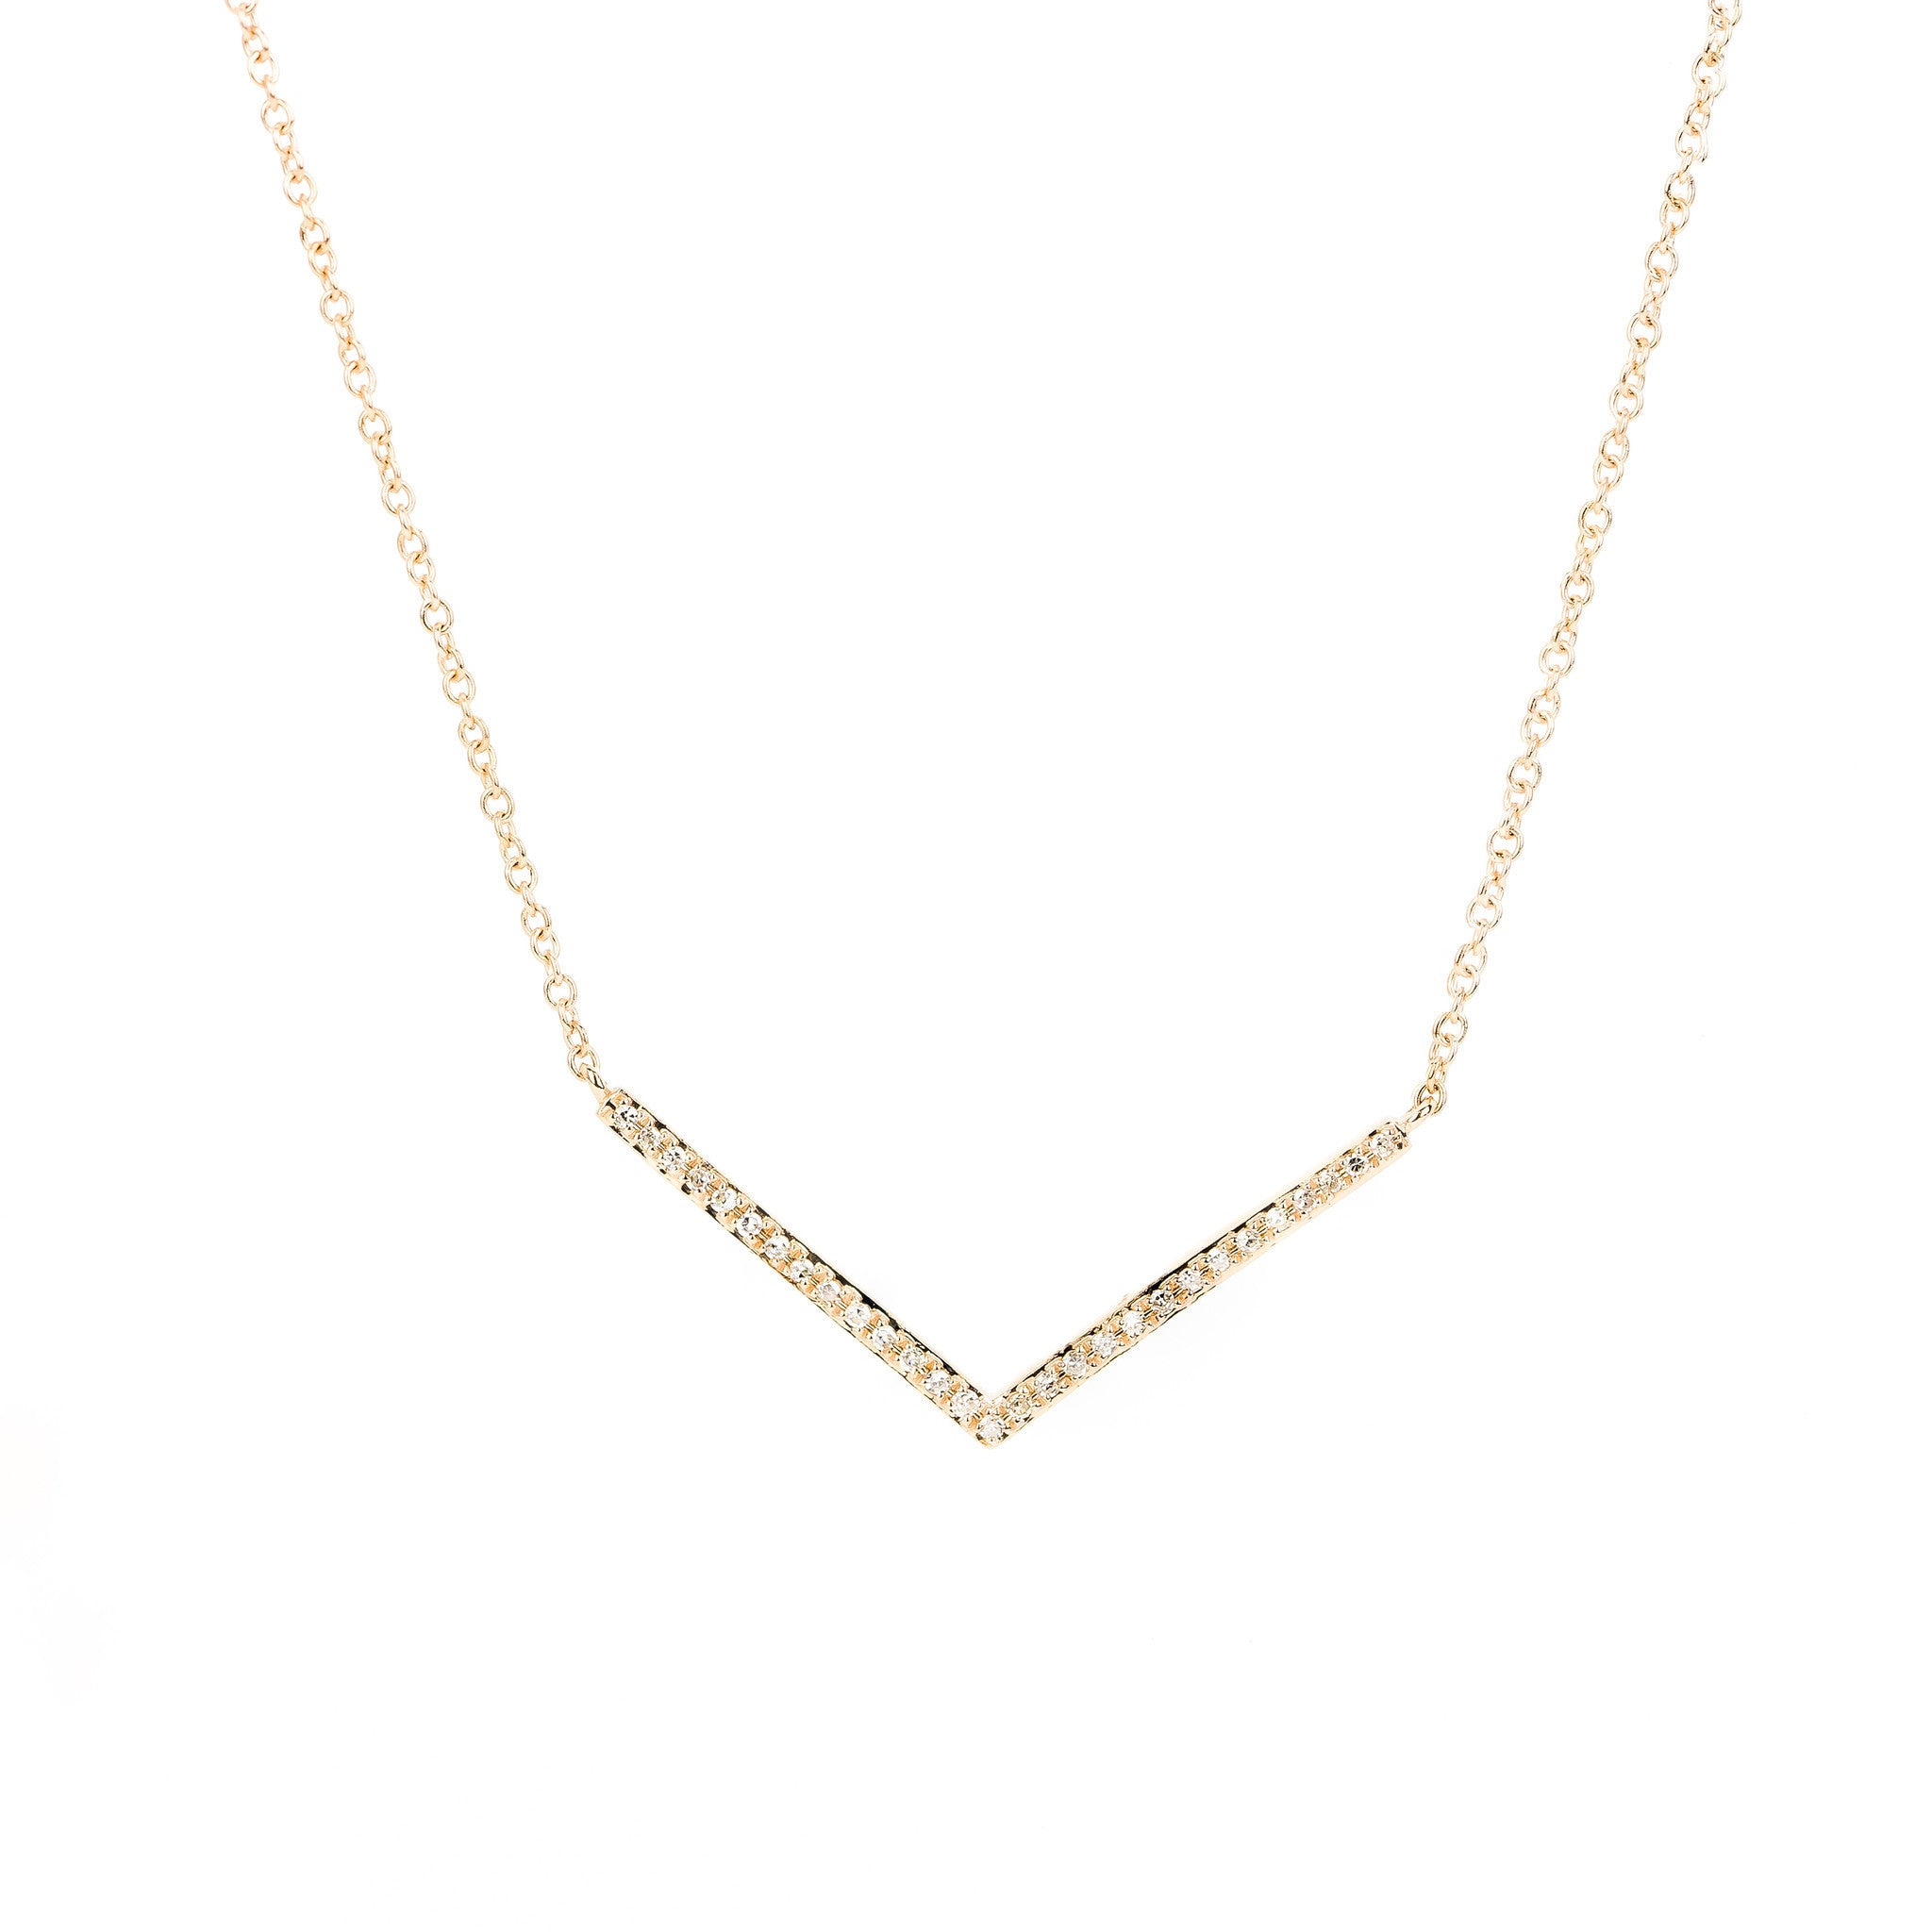 strand necklace raw double cheap doublestrandrawdiamondnecklace shop diamond